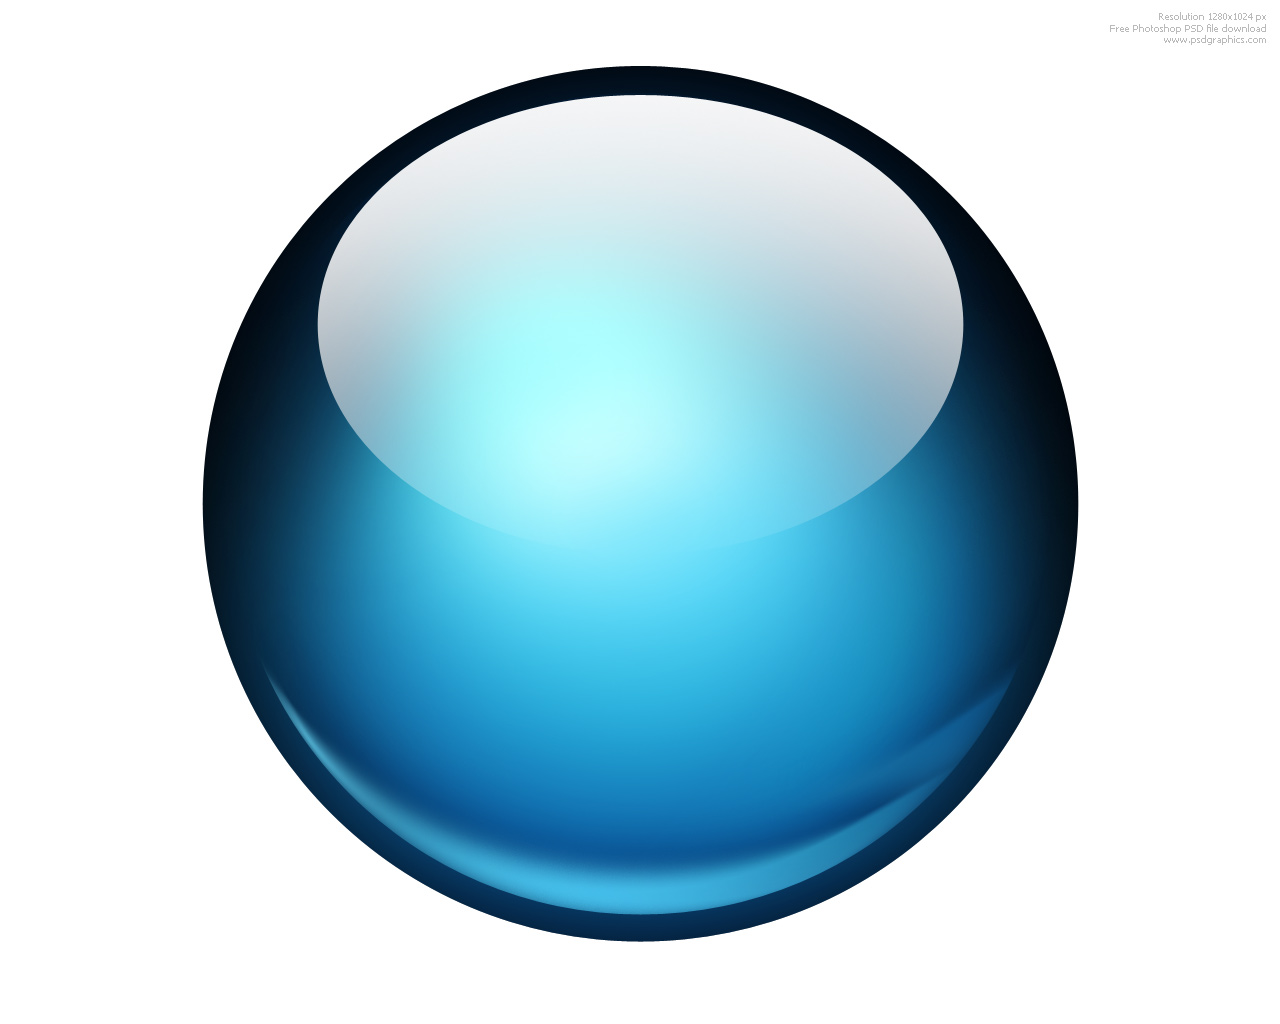 12 Glossy Ball Icon Images